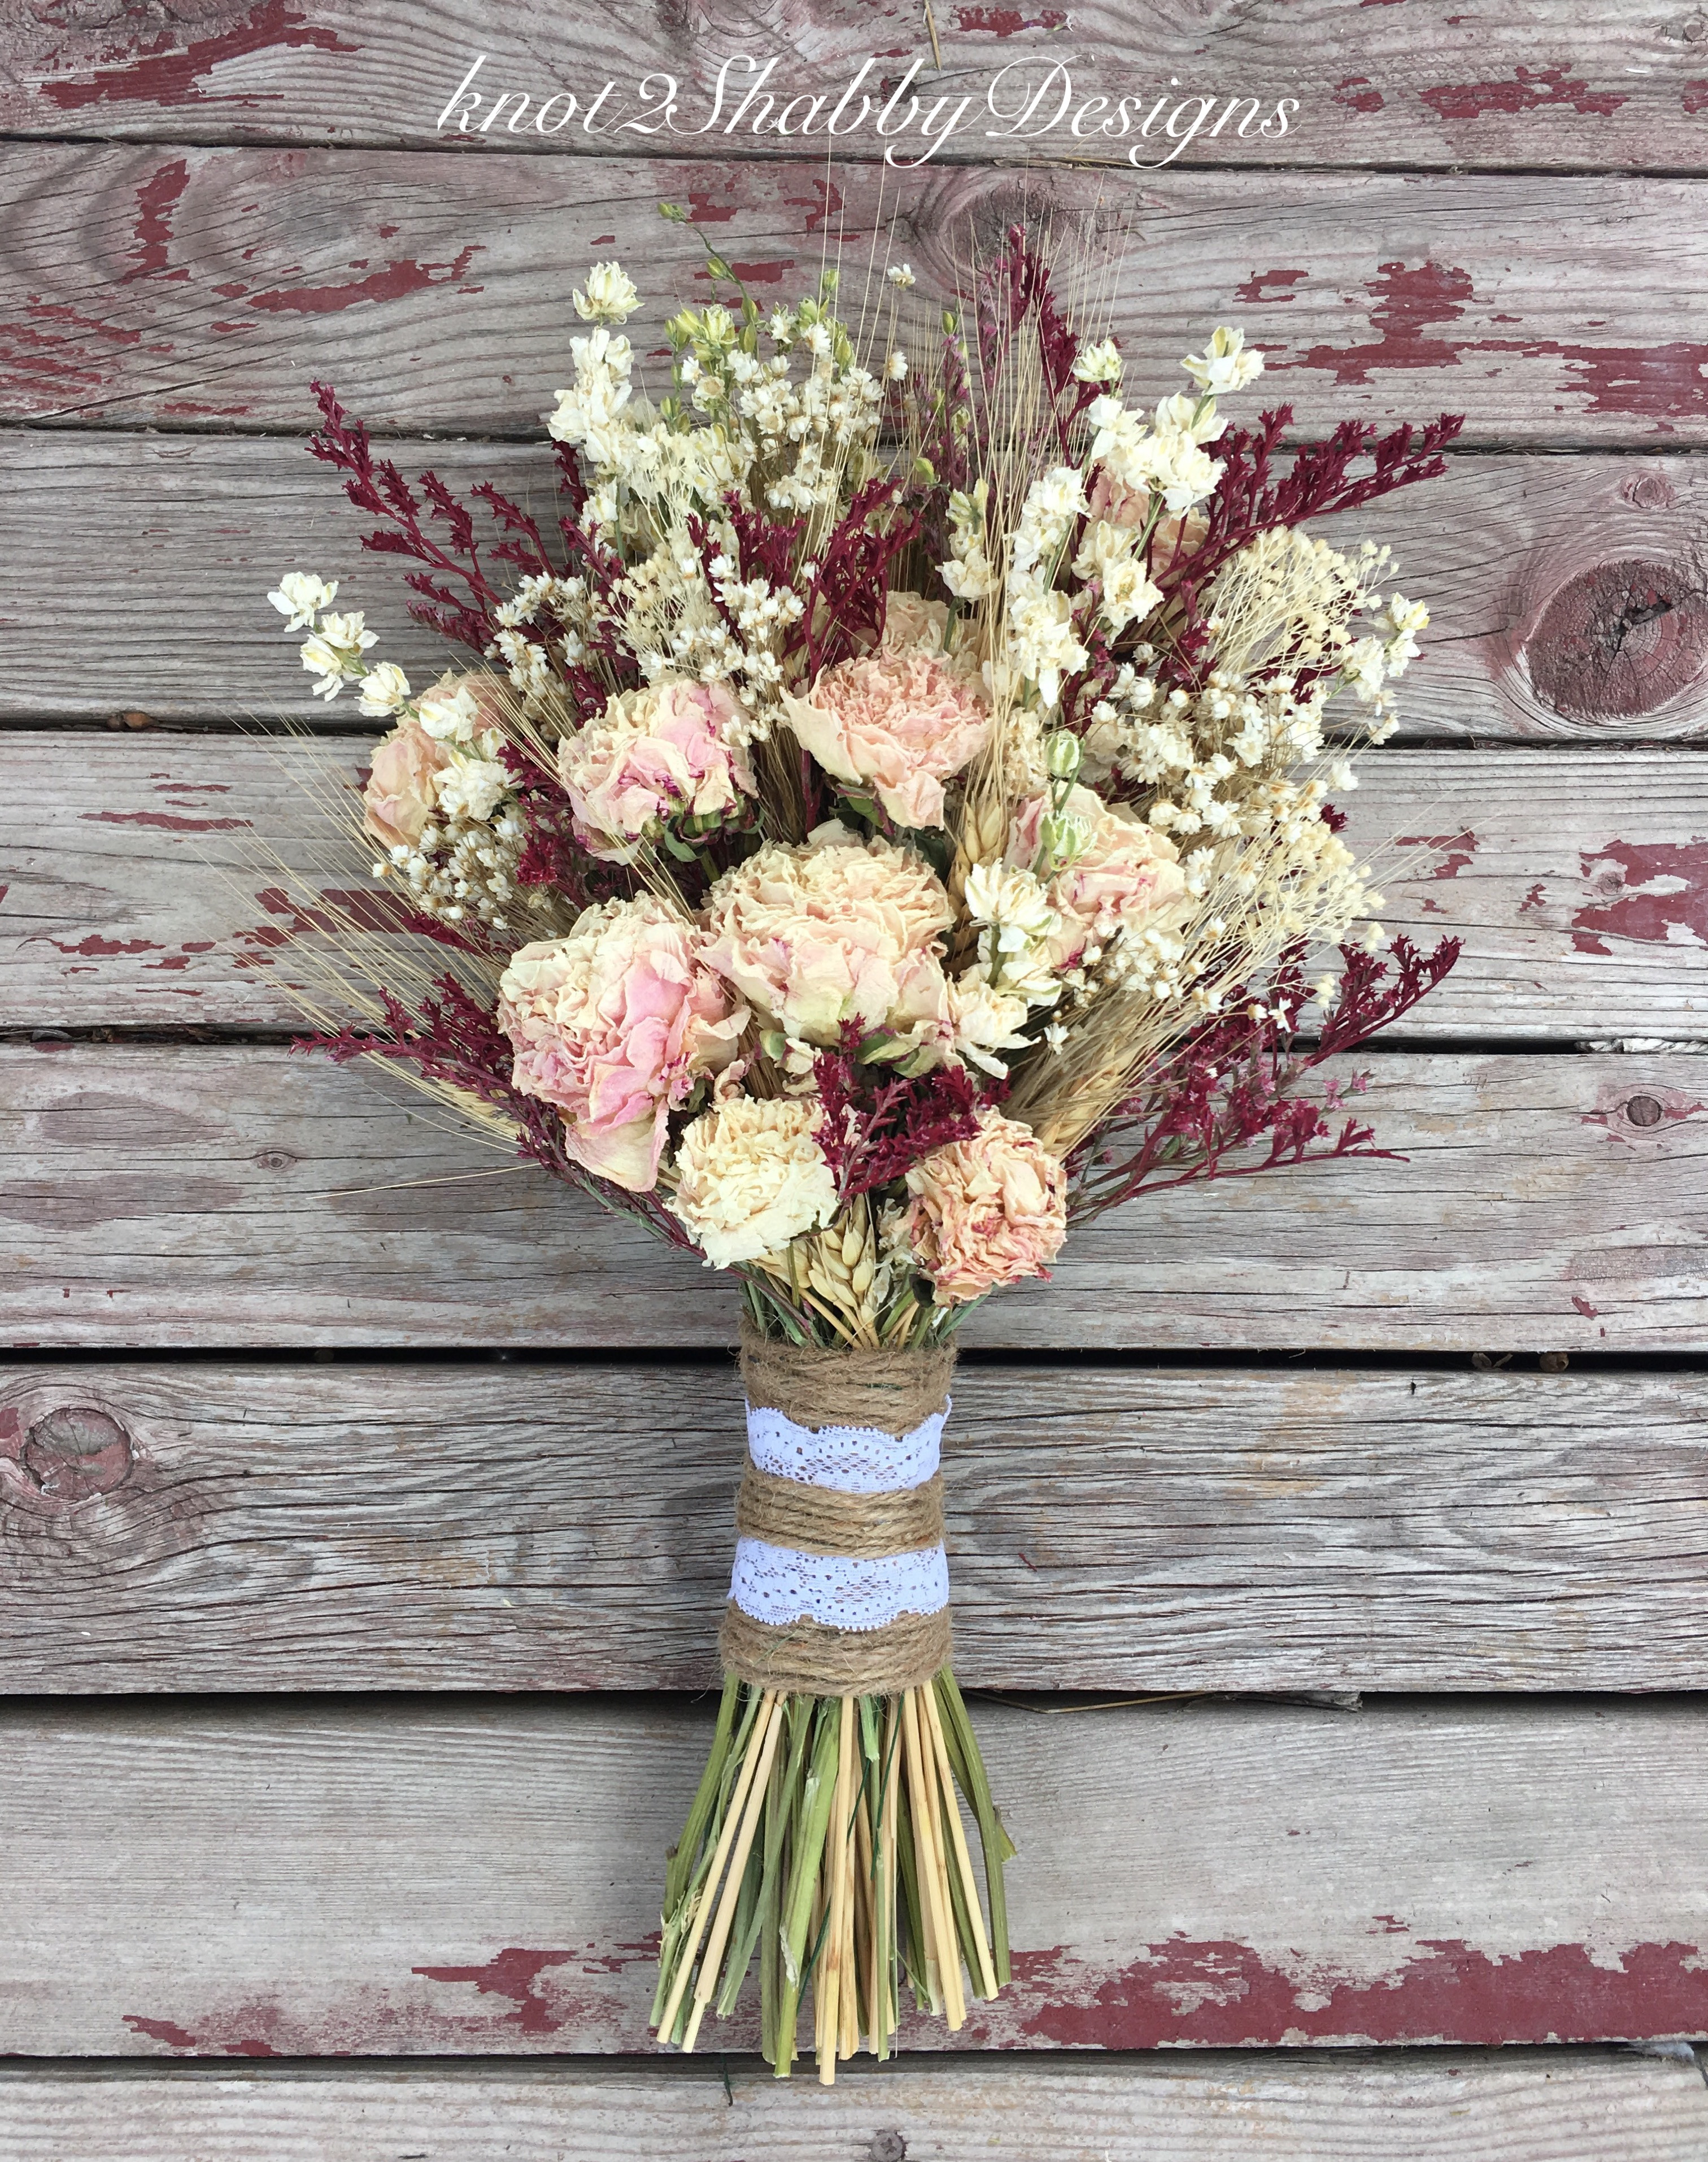 Wedding Flowers | United States | Knot2ShabbyDesigns.co